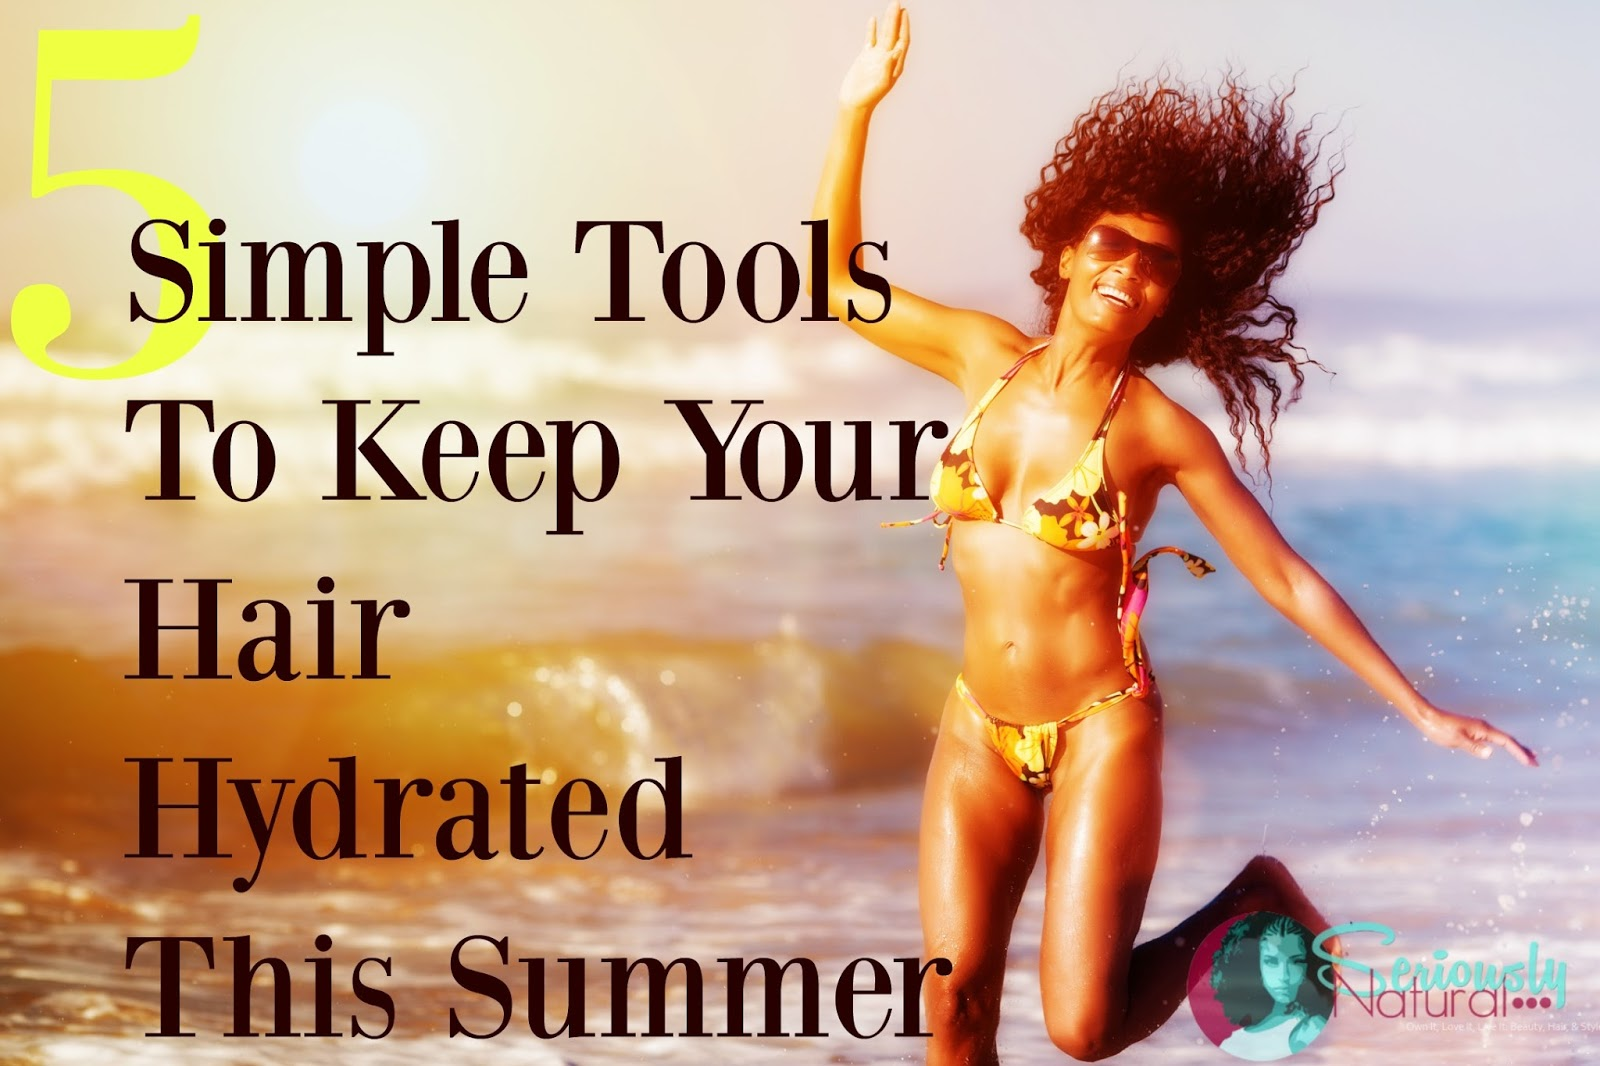 5 Simple Tools To Keep Your Hair Hydrated This Summer